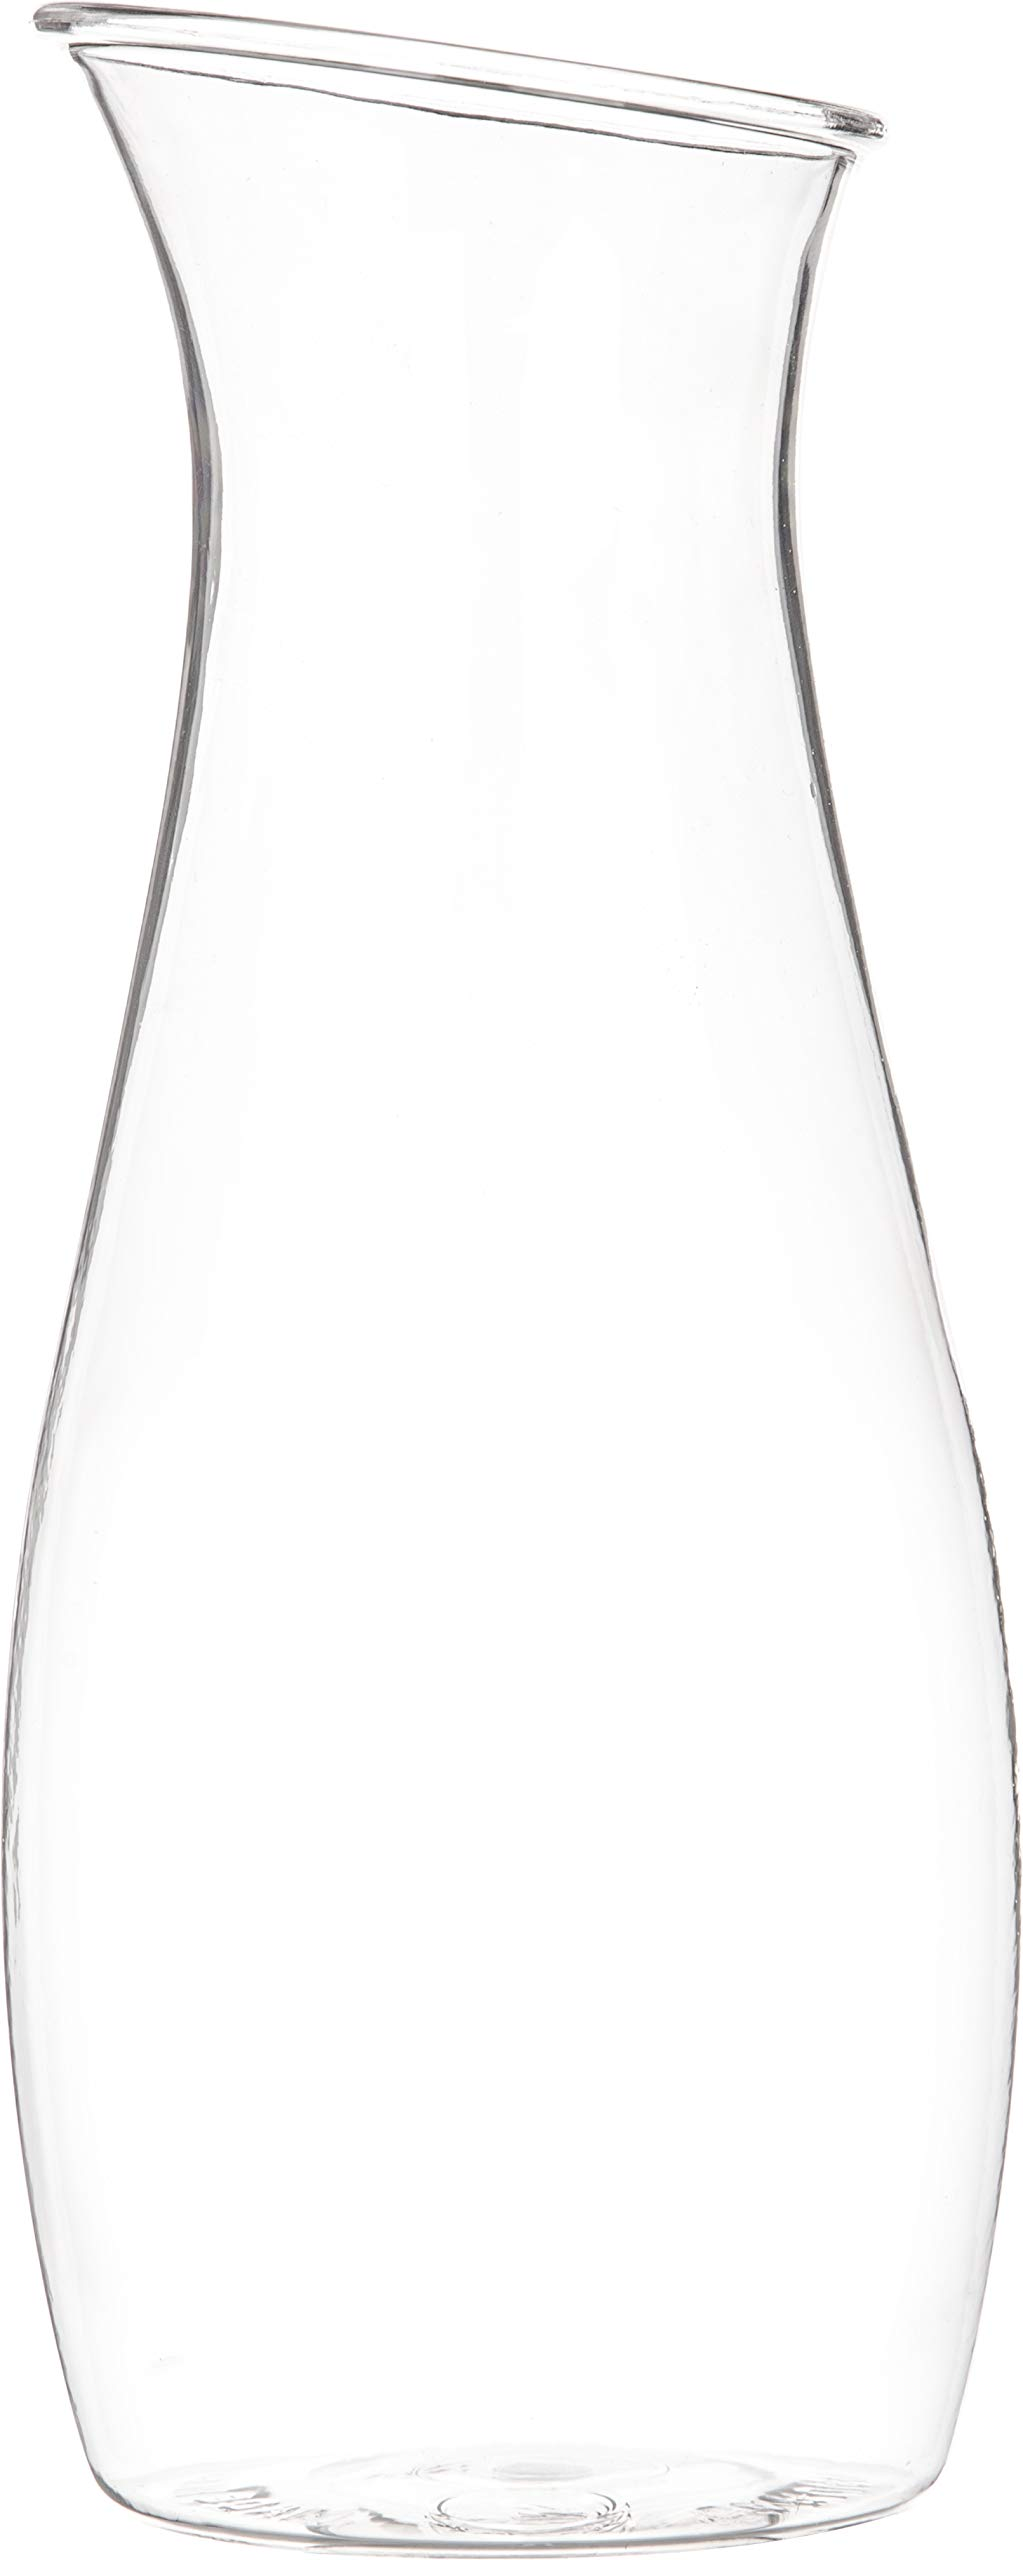 Carlisle 7090207 Cascata Carafe Juice Jar Beverage Decanter Only, Plastic, 1 L, Clear by Carlisle (Image #2)